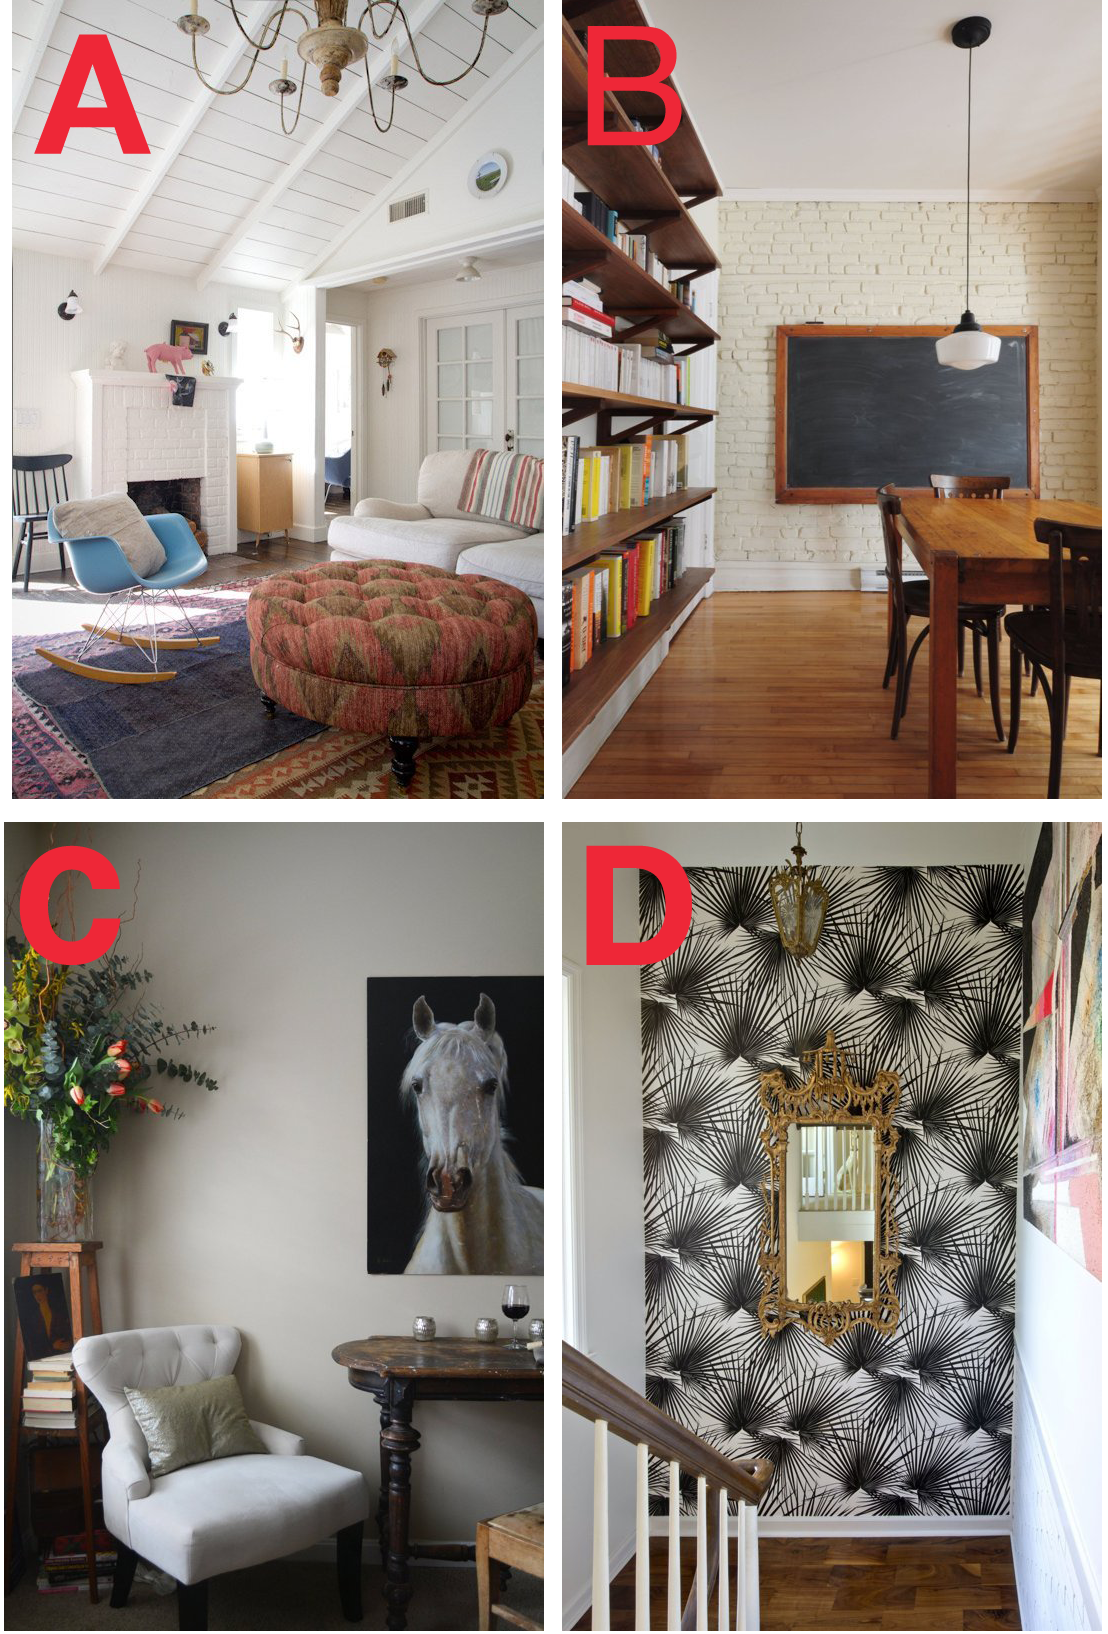 I Am A D Nice Tool For Helping You Figure Out Your Decorating Style Mostly S Clic Glam Love Good Bones And Interesting Details Like